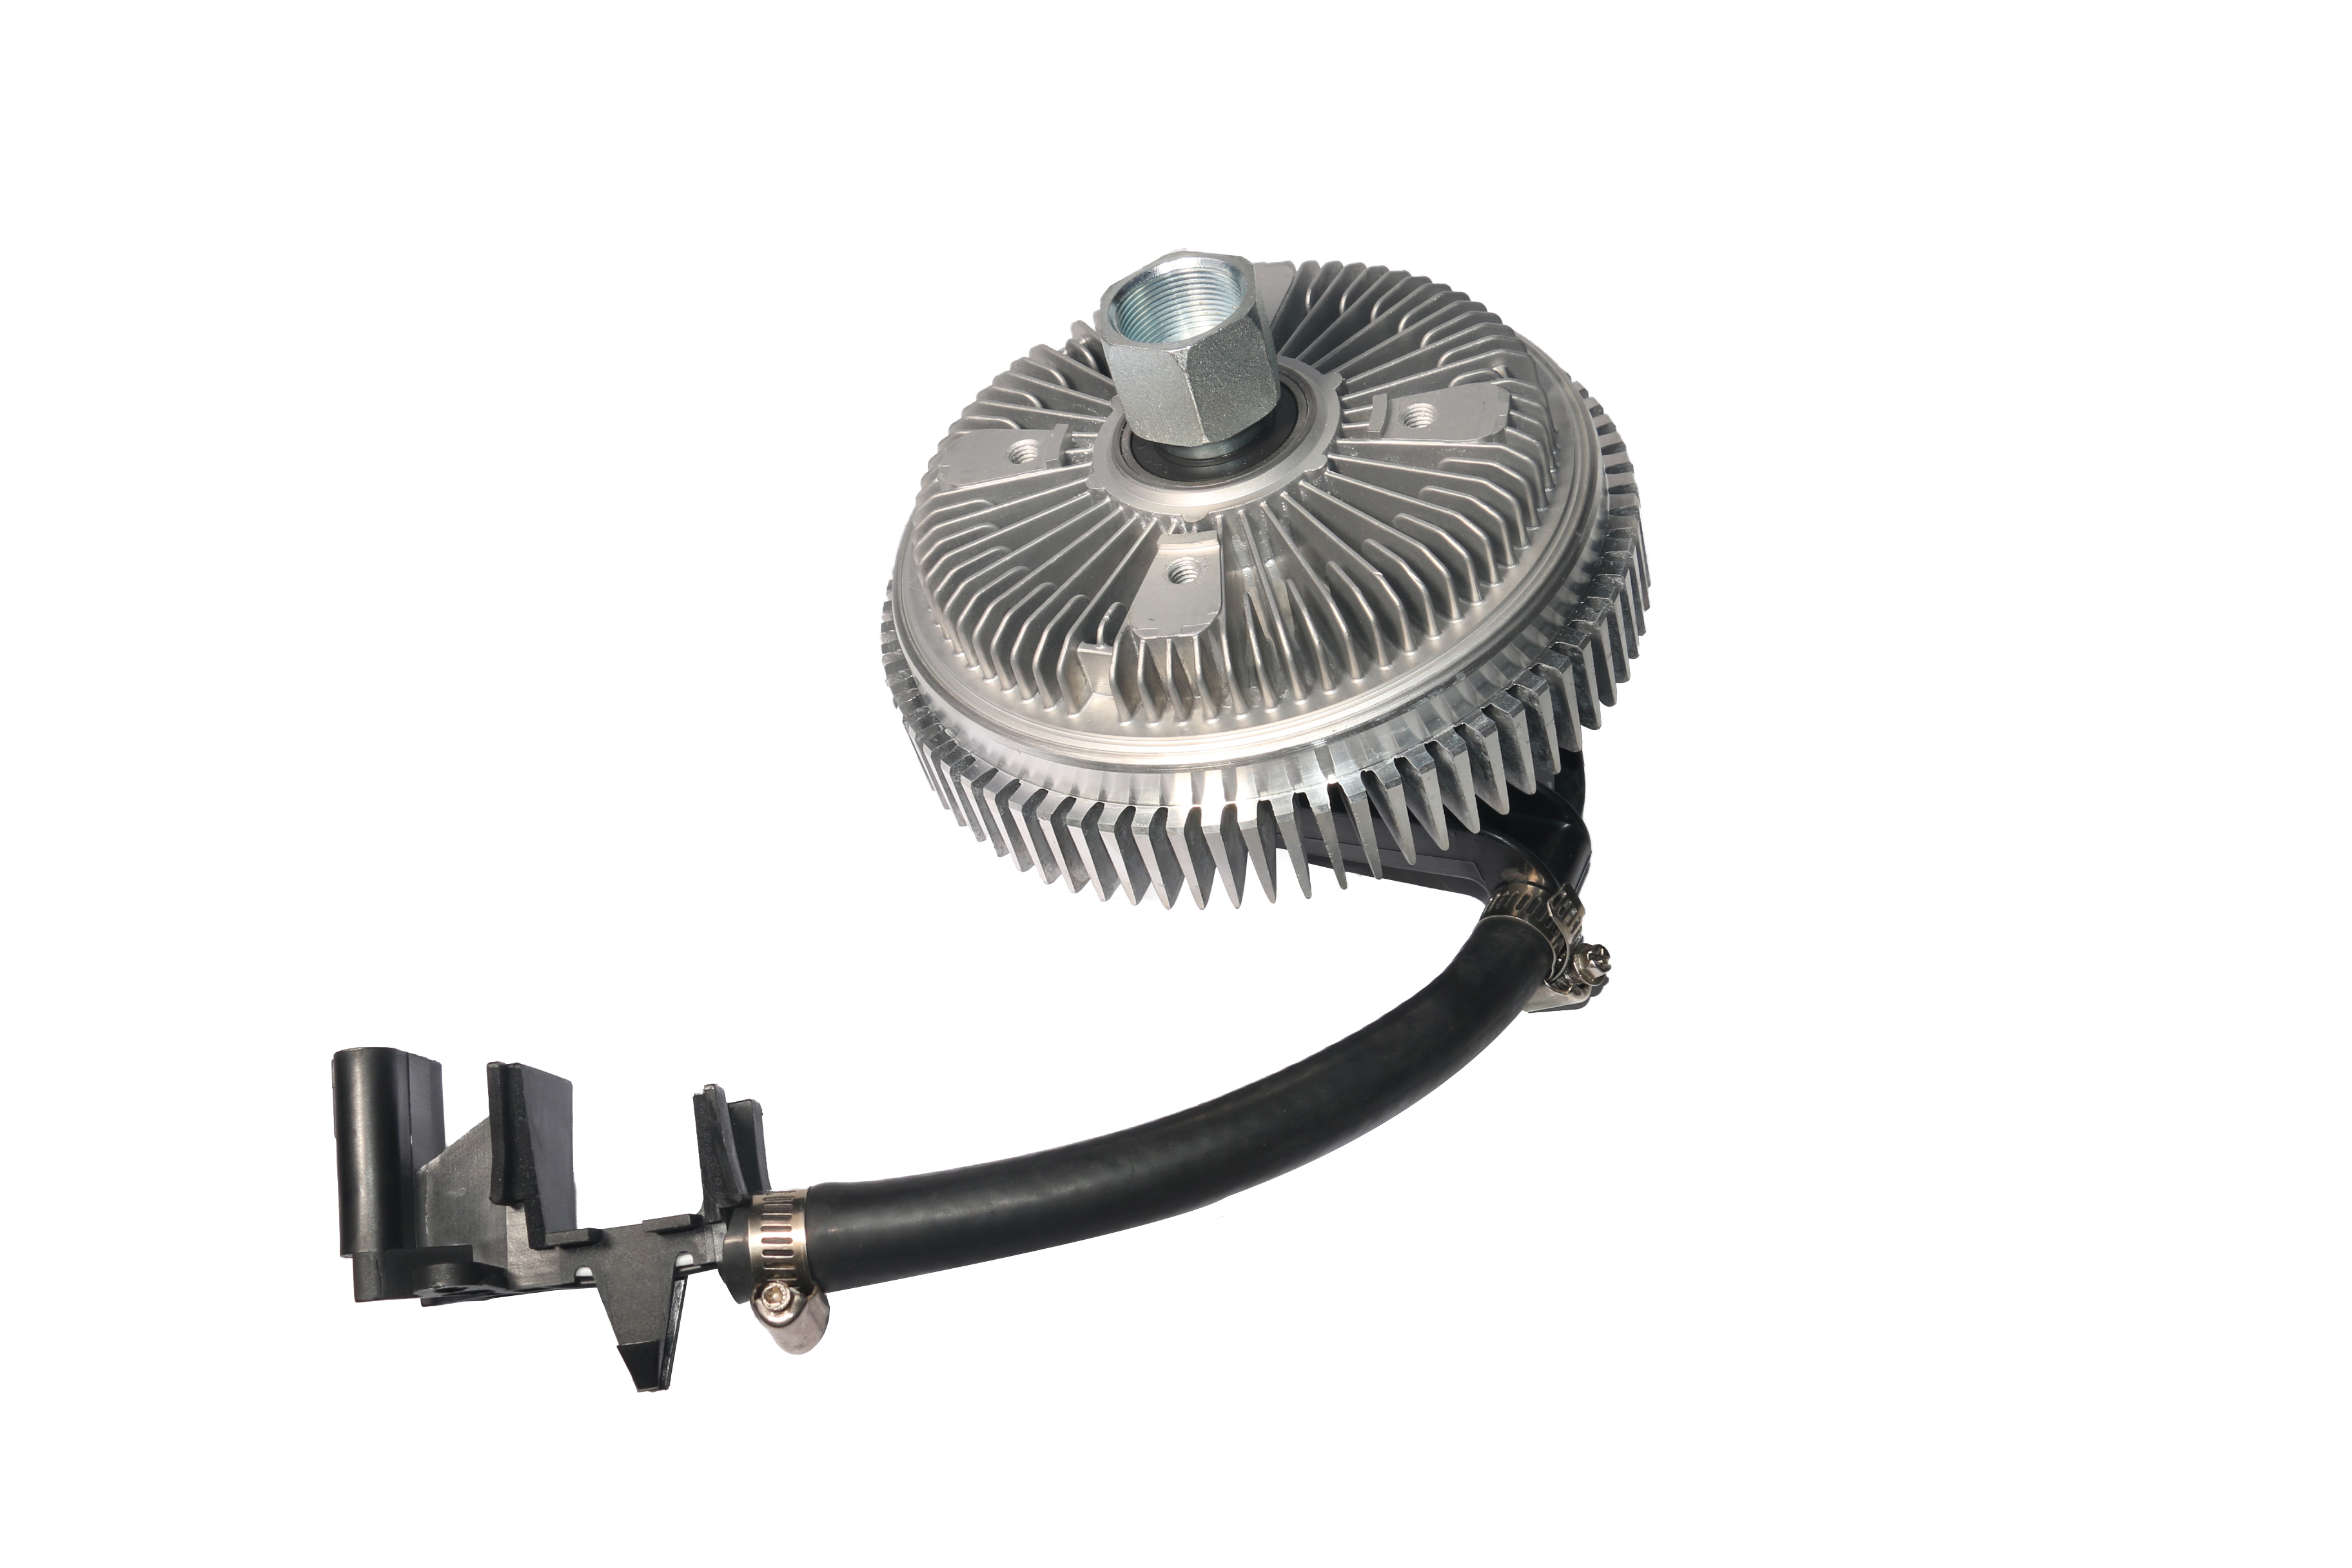 Electronic Radiator Fan Clutch - With Harness - Fits Chevy Trailblazer 2002-2009, EXT, GMC Envoy, Buick Rainier, Isuzu Ascender, Bravada, Saab 9-7x Image